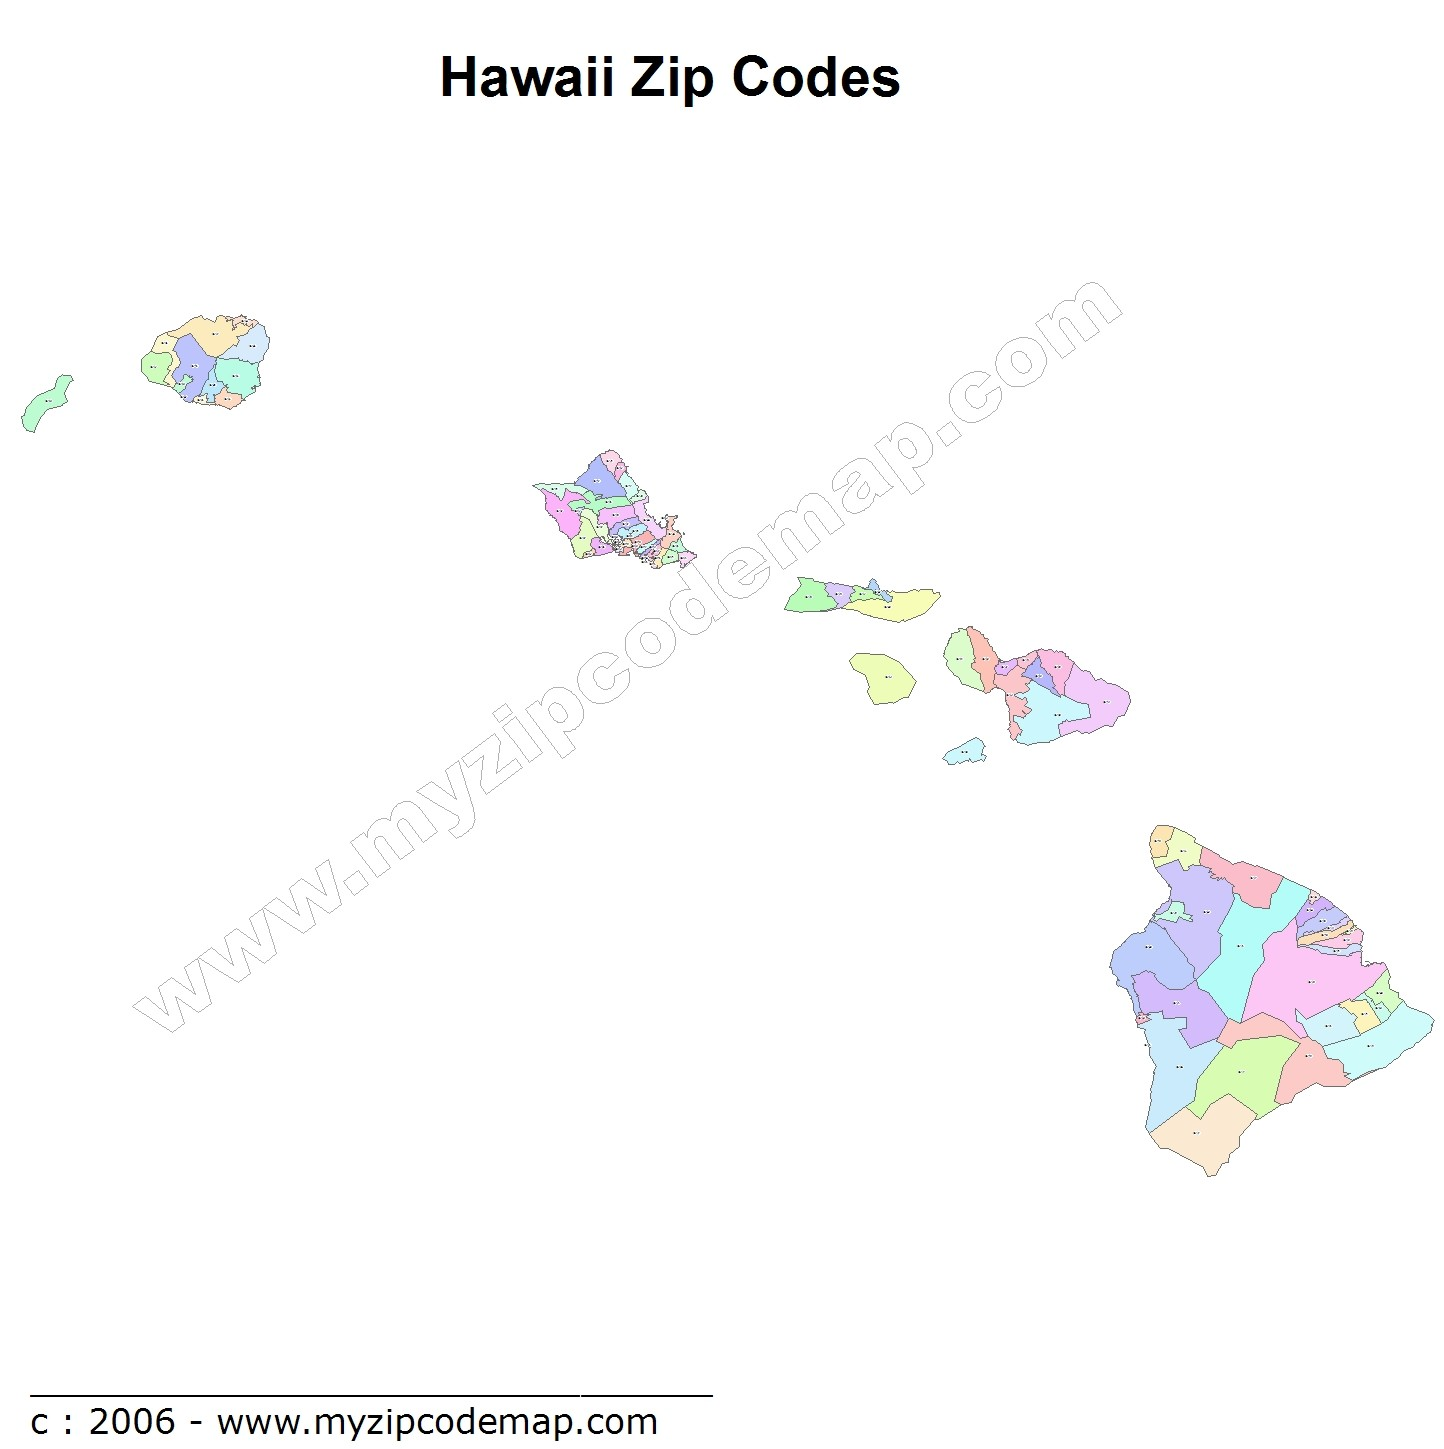 Hawaii (HI) Zip Code Map